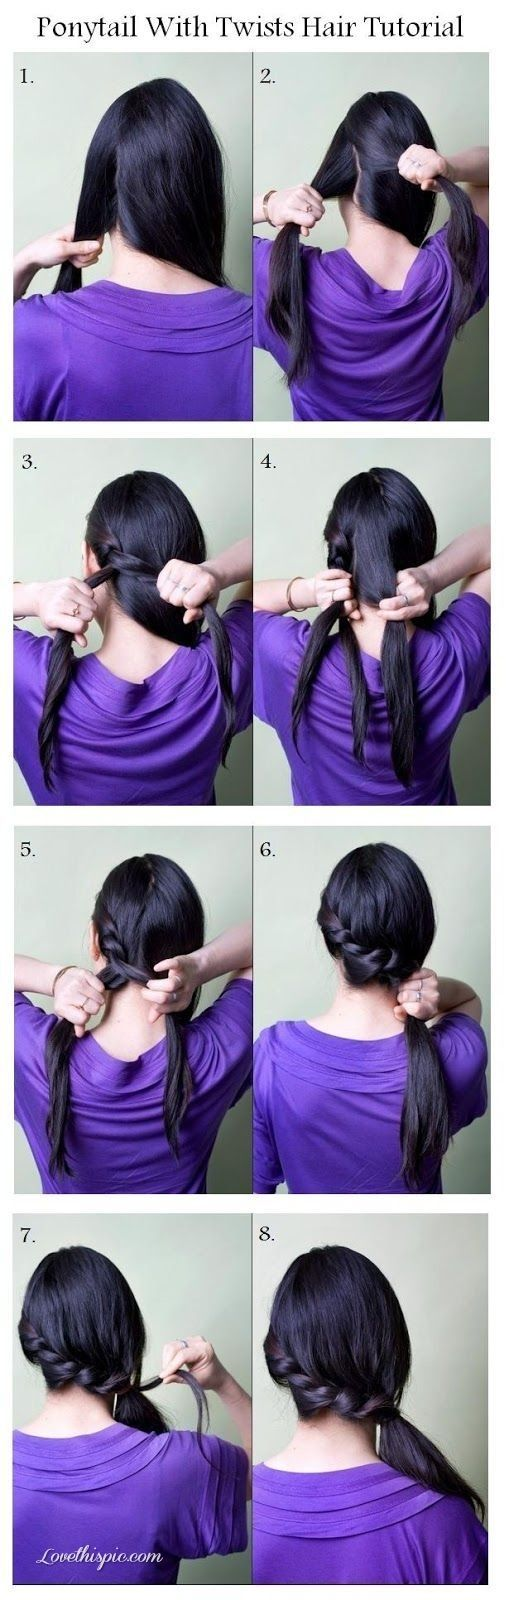 ponytail with a twist diy easy diy diy hair diy fashion beauty diy diy style fashion diy